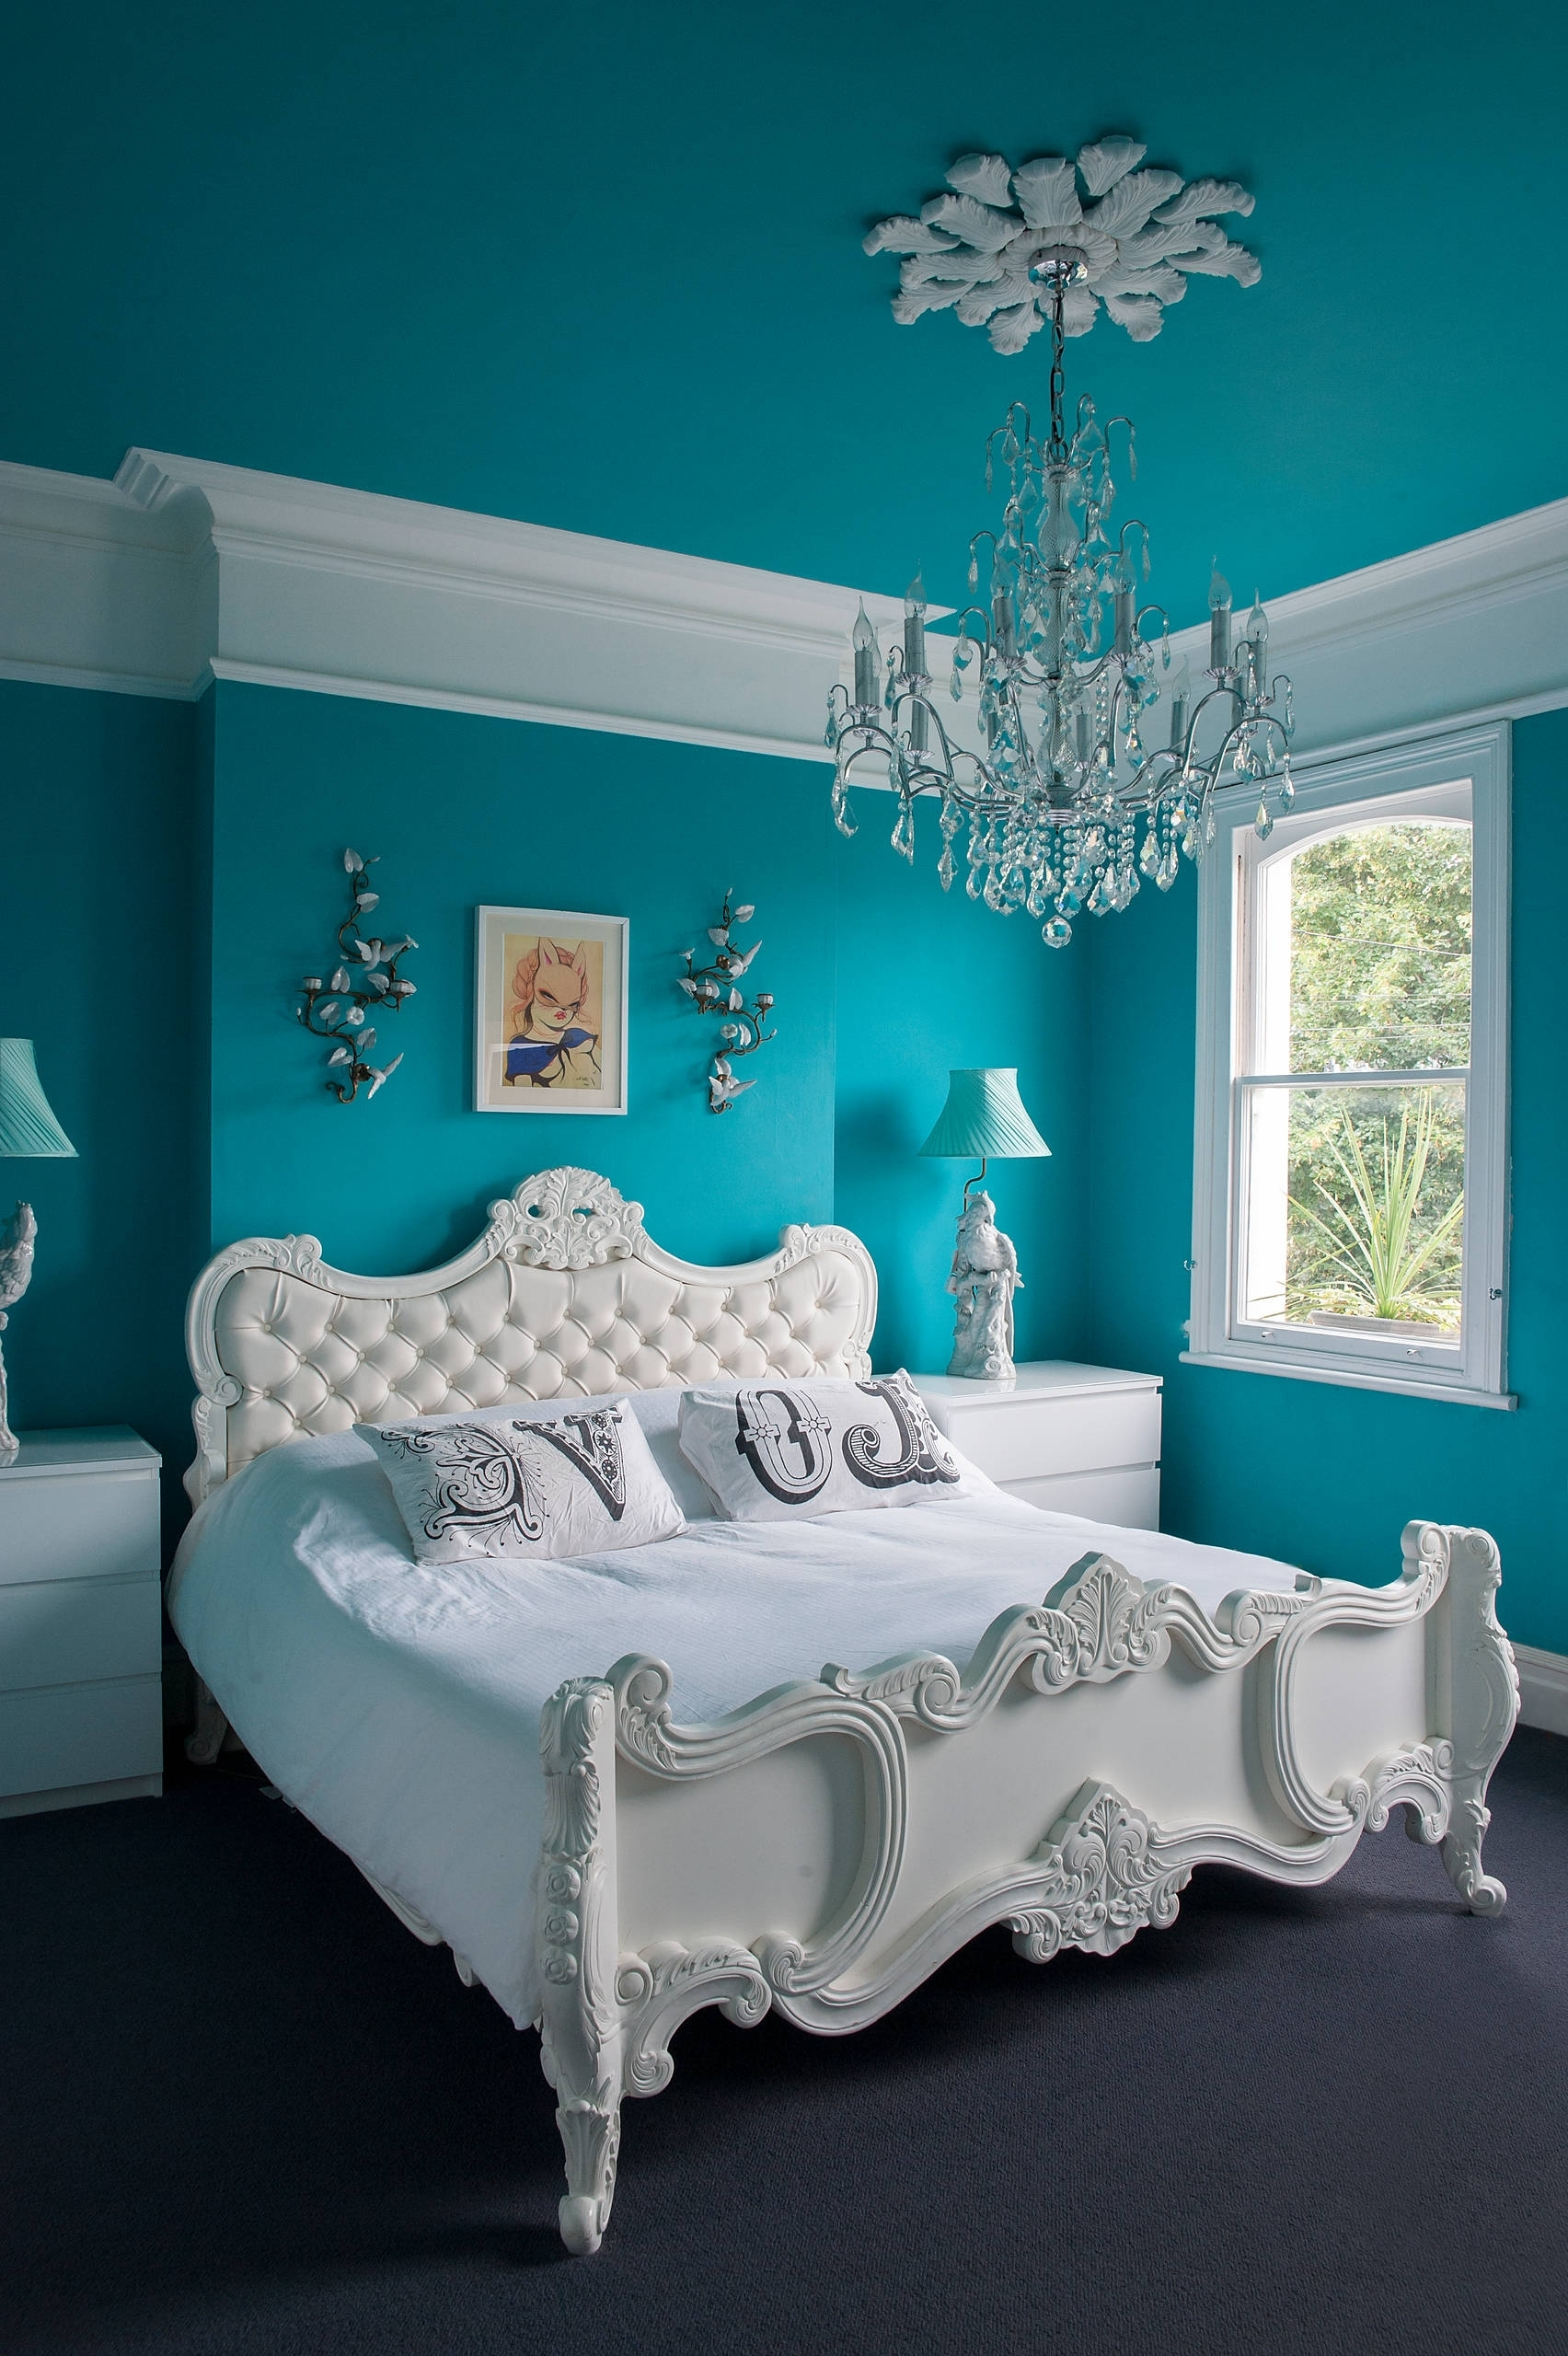 Bedroom: Turquoise Room Ideas For Modern Bedroom Design Idea Pertaining To Most Popular Turquoise Bedroom Chandeliers (View 6 of 20)